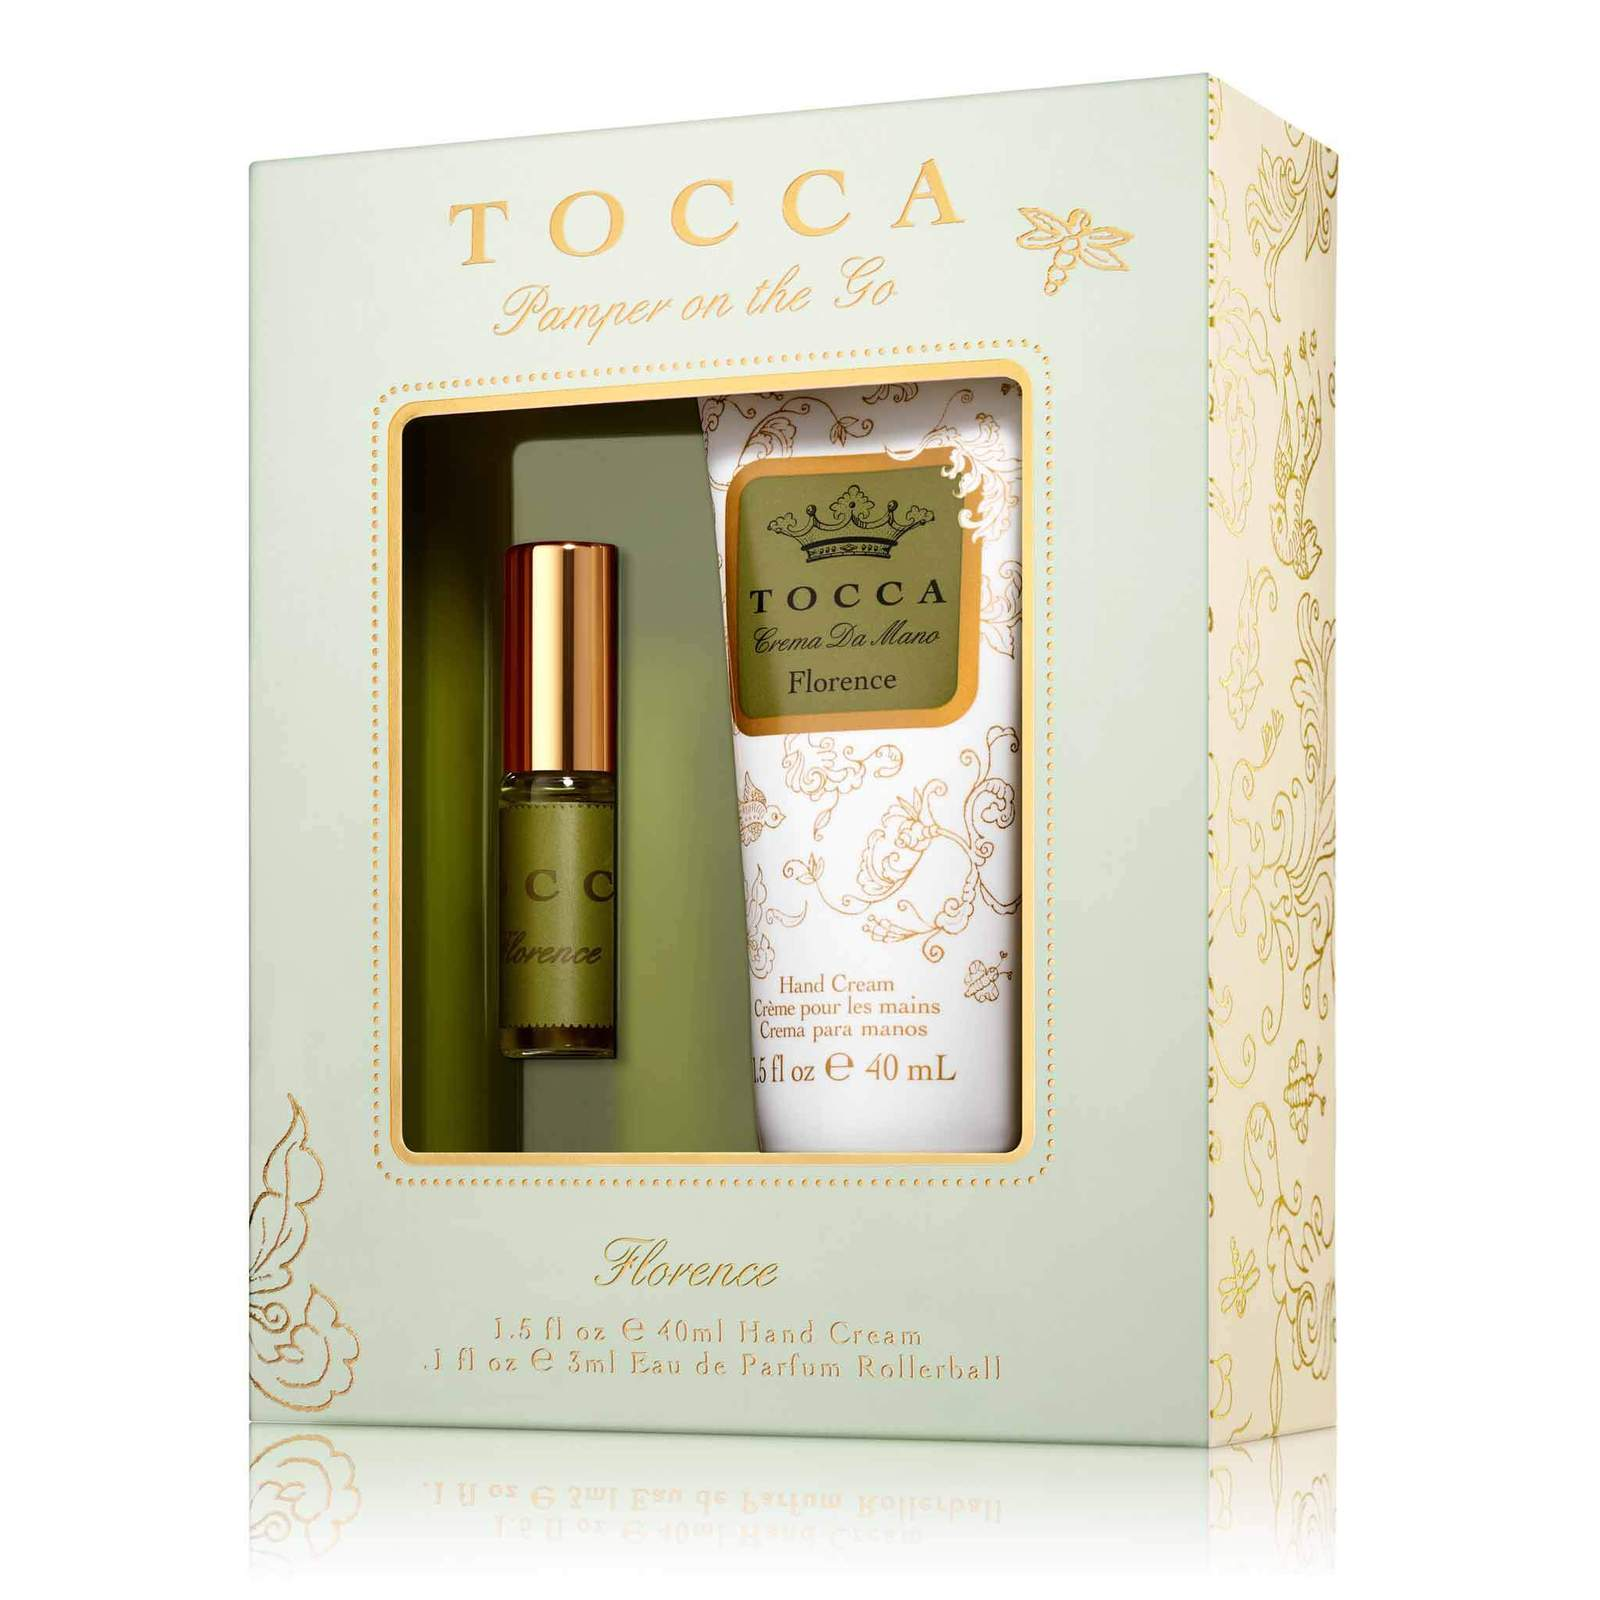 Primary image for Tocca Florence Pamper on the Go Gift Set